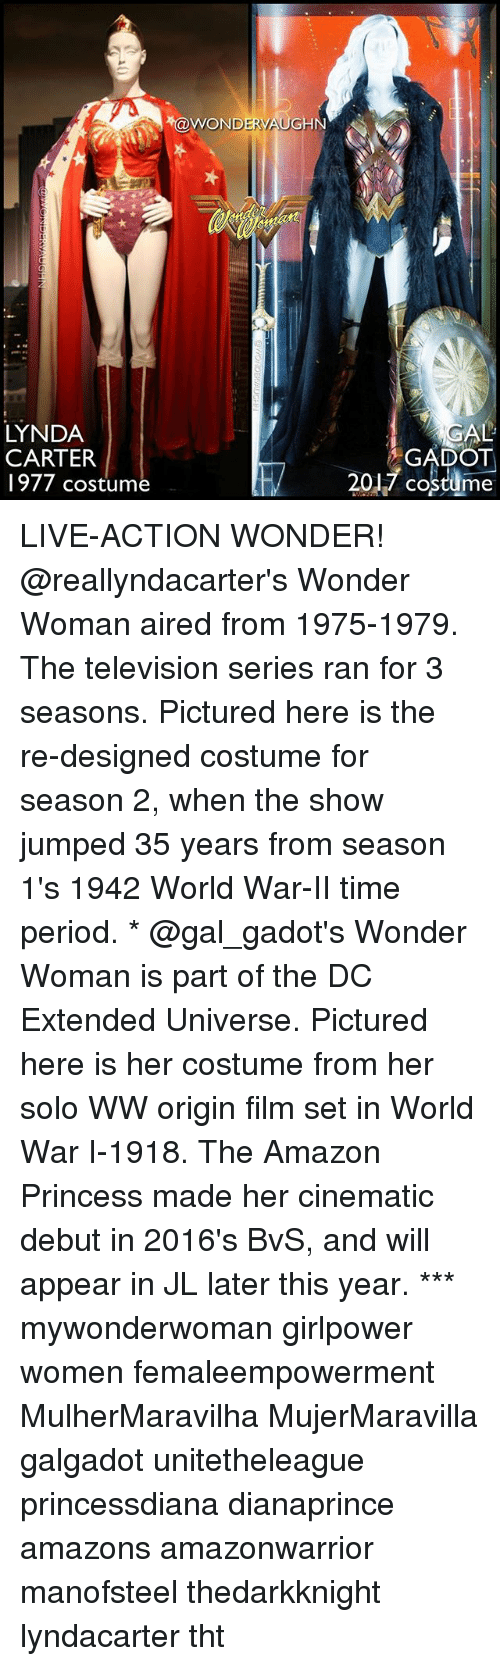 originality: WOND  ERV  GHN  LYNDA  CARTER  1977 costume  2017 cosme  AL  GADOT LIVE-ACTION WONDER! @reallyndacarter's Wonder Woman aired from 1975-1979. The television series ran for 3 seasons. Pictured here is the re-designed costume for season 2, when the show jumped 35 years from season 1's 1942 World War-II time period. * @gal_gadot's Wonder Woman is part of the DC Extended Universe. Pictured here is her costume from her solo WW origin film set in World War I-1918. The Amazon Princess made her cinematic debut in 2016's BvS, and will appear in JL later this year. *** mywonderwoman girlpower women femaleempowerment MulherMaravilha MujerMaravilla galgadot unitetheleague princessdiana dianaprince amazons amazonwarrior manofsteel thedarkknight lyndacarter tht